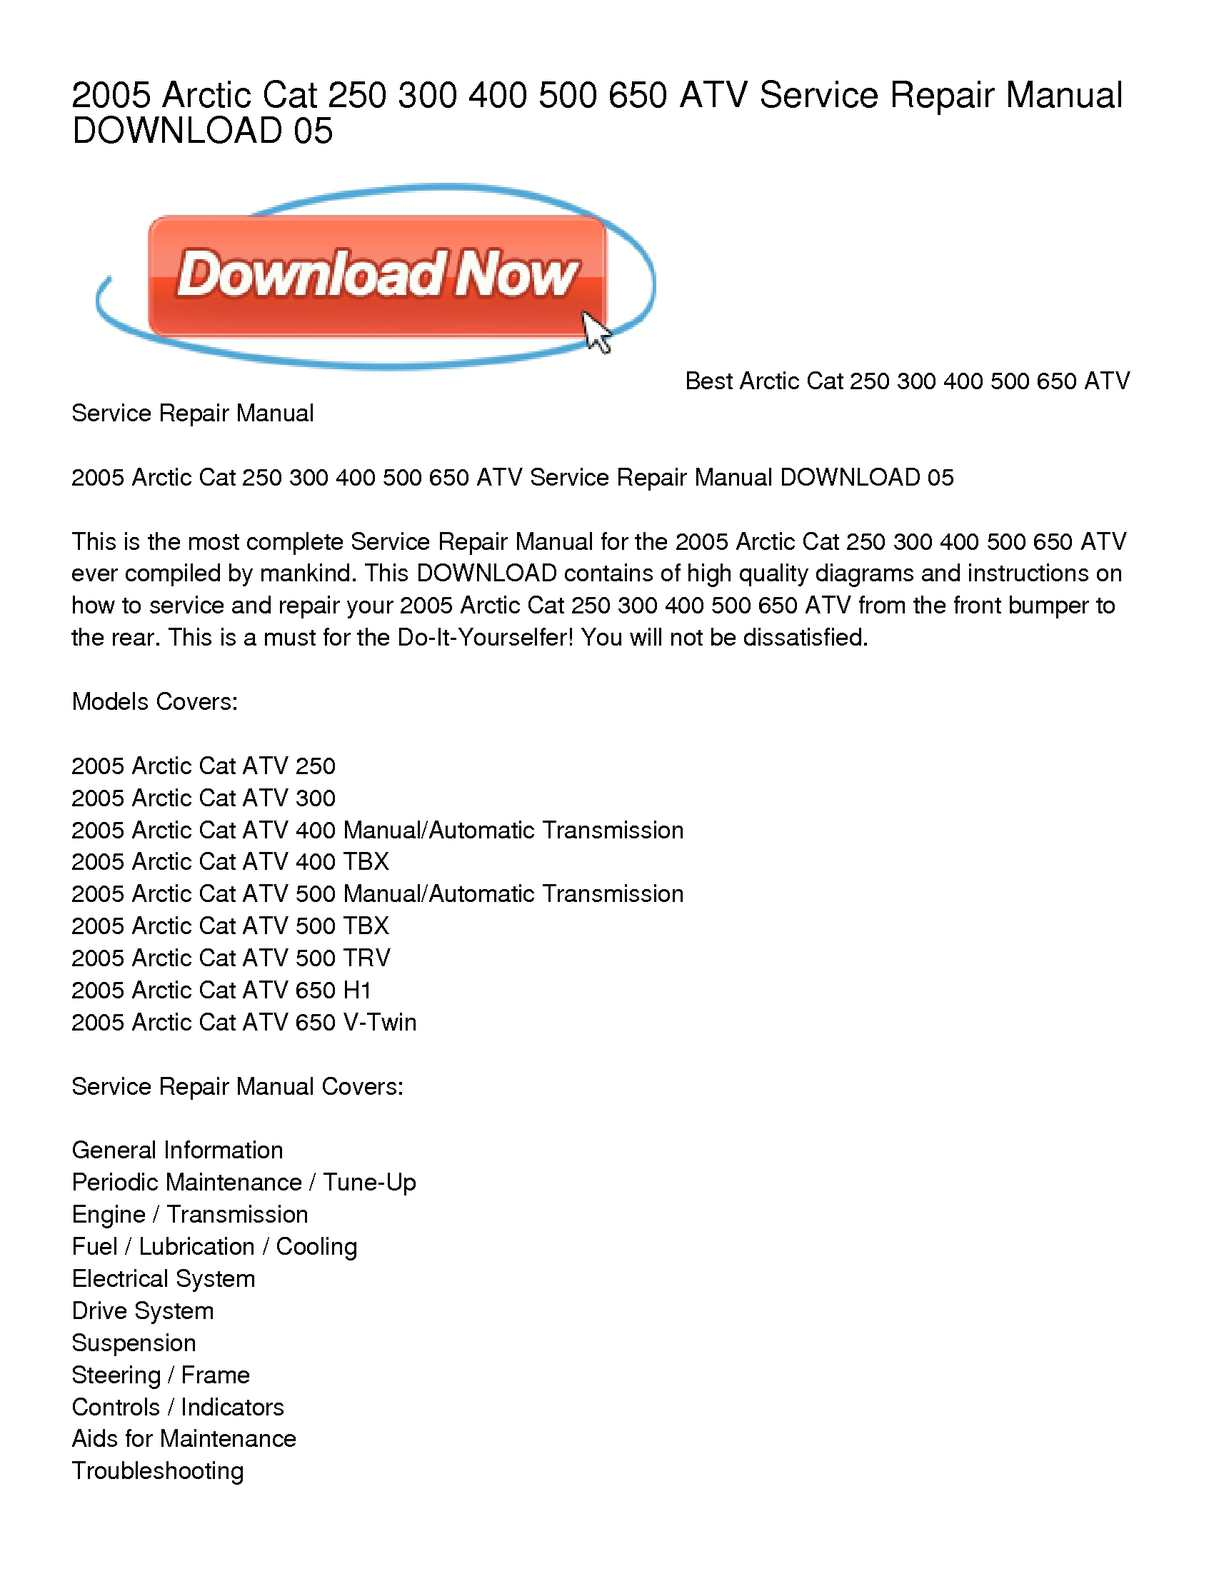 Calaméo - 2005 Arctic Cat 250 300 400 500 650 ATV Service Repair Manual  DOWNLOAD 05